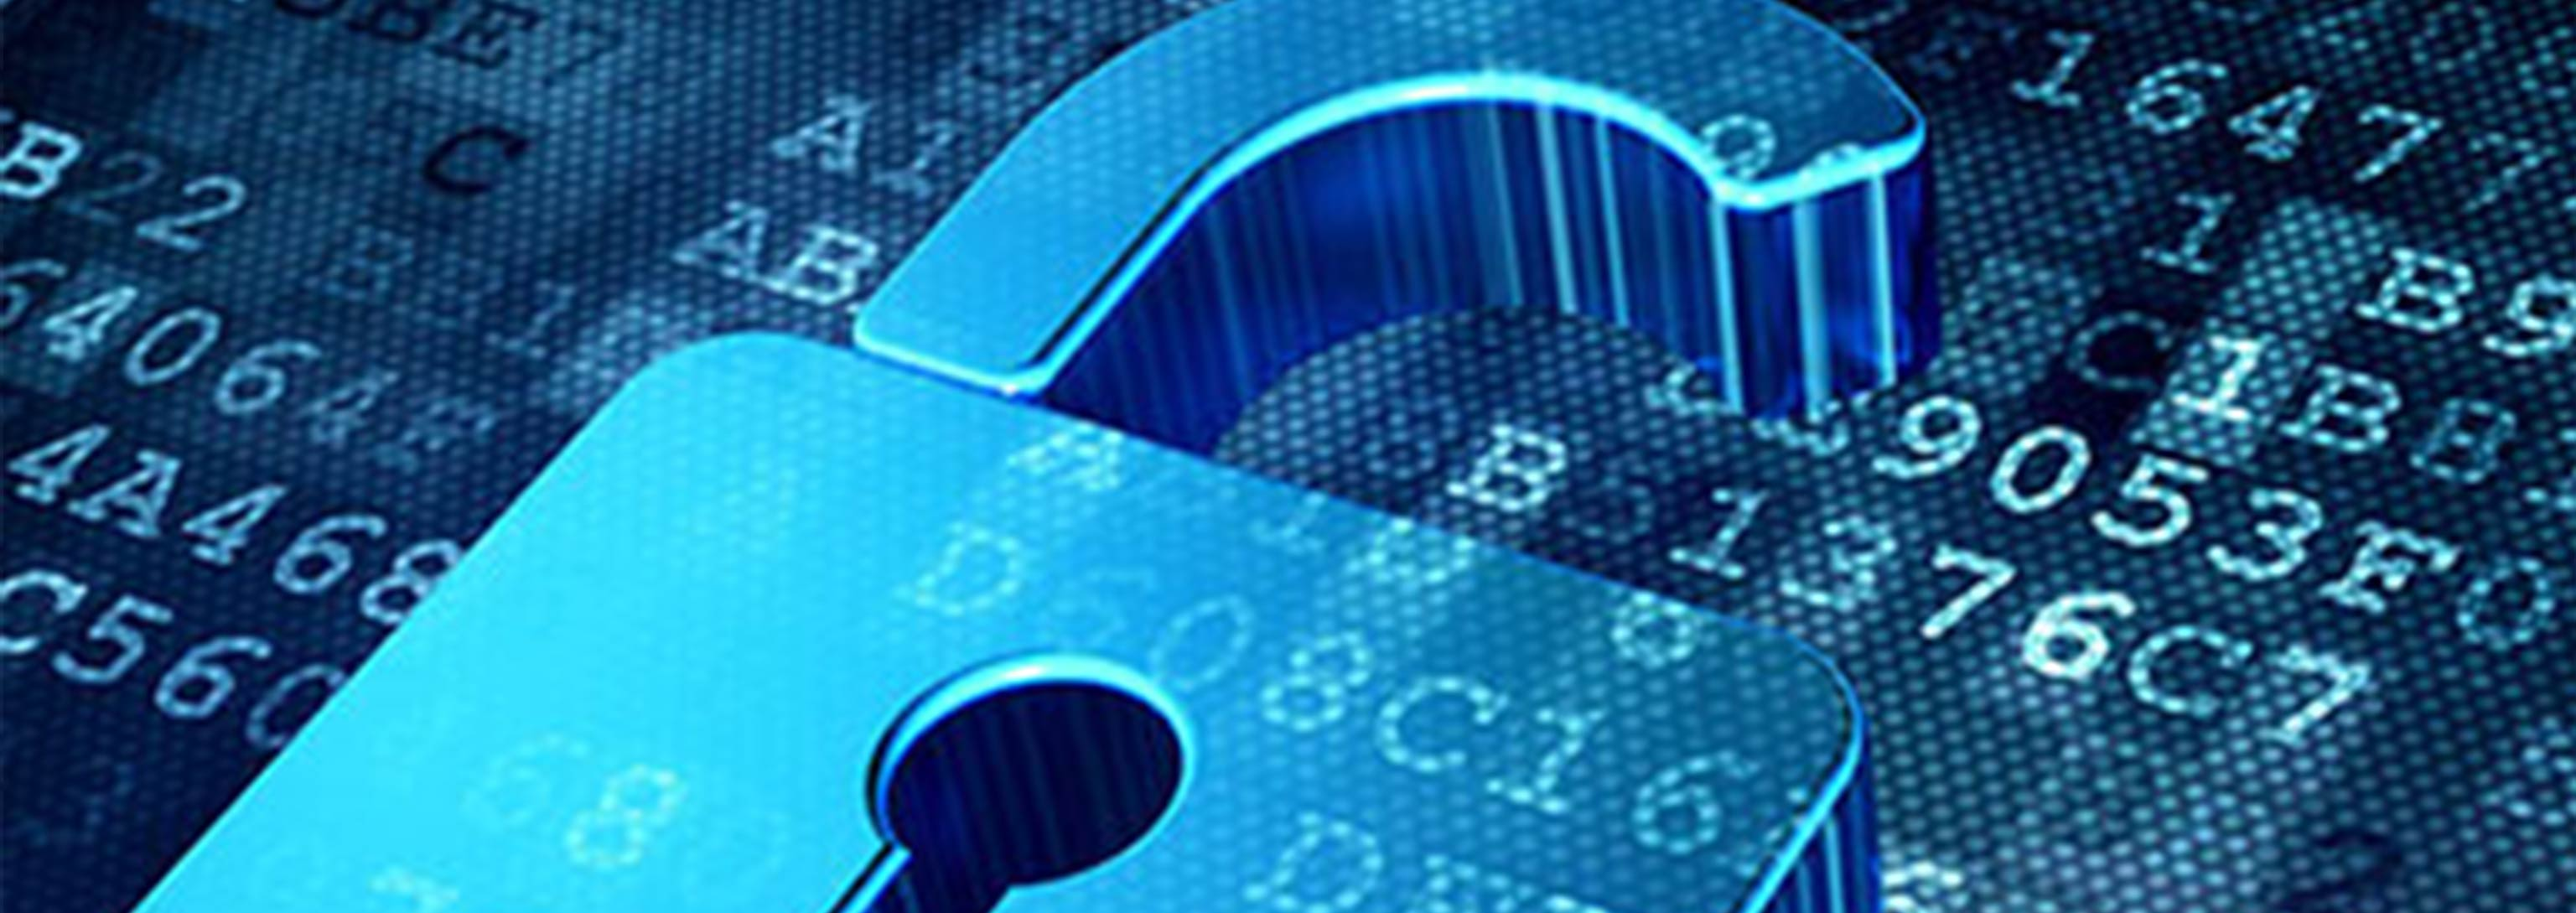 Data Protection Backups Pra Pca Rgpd Pci Dss Tas Security Policy And Procedures